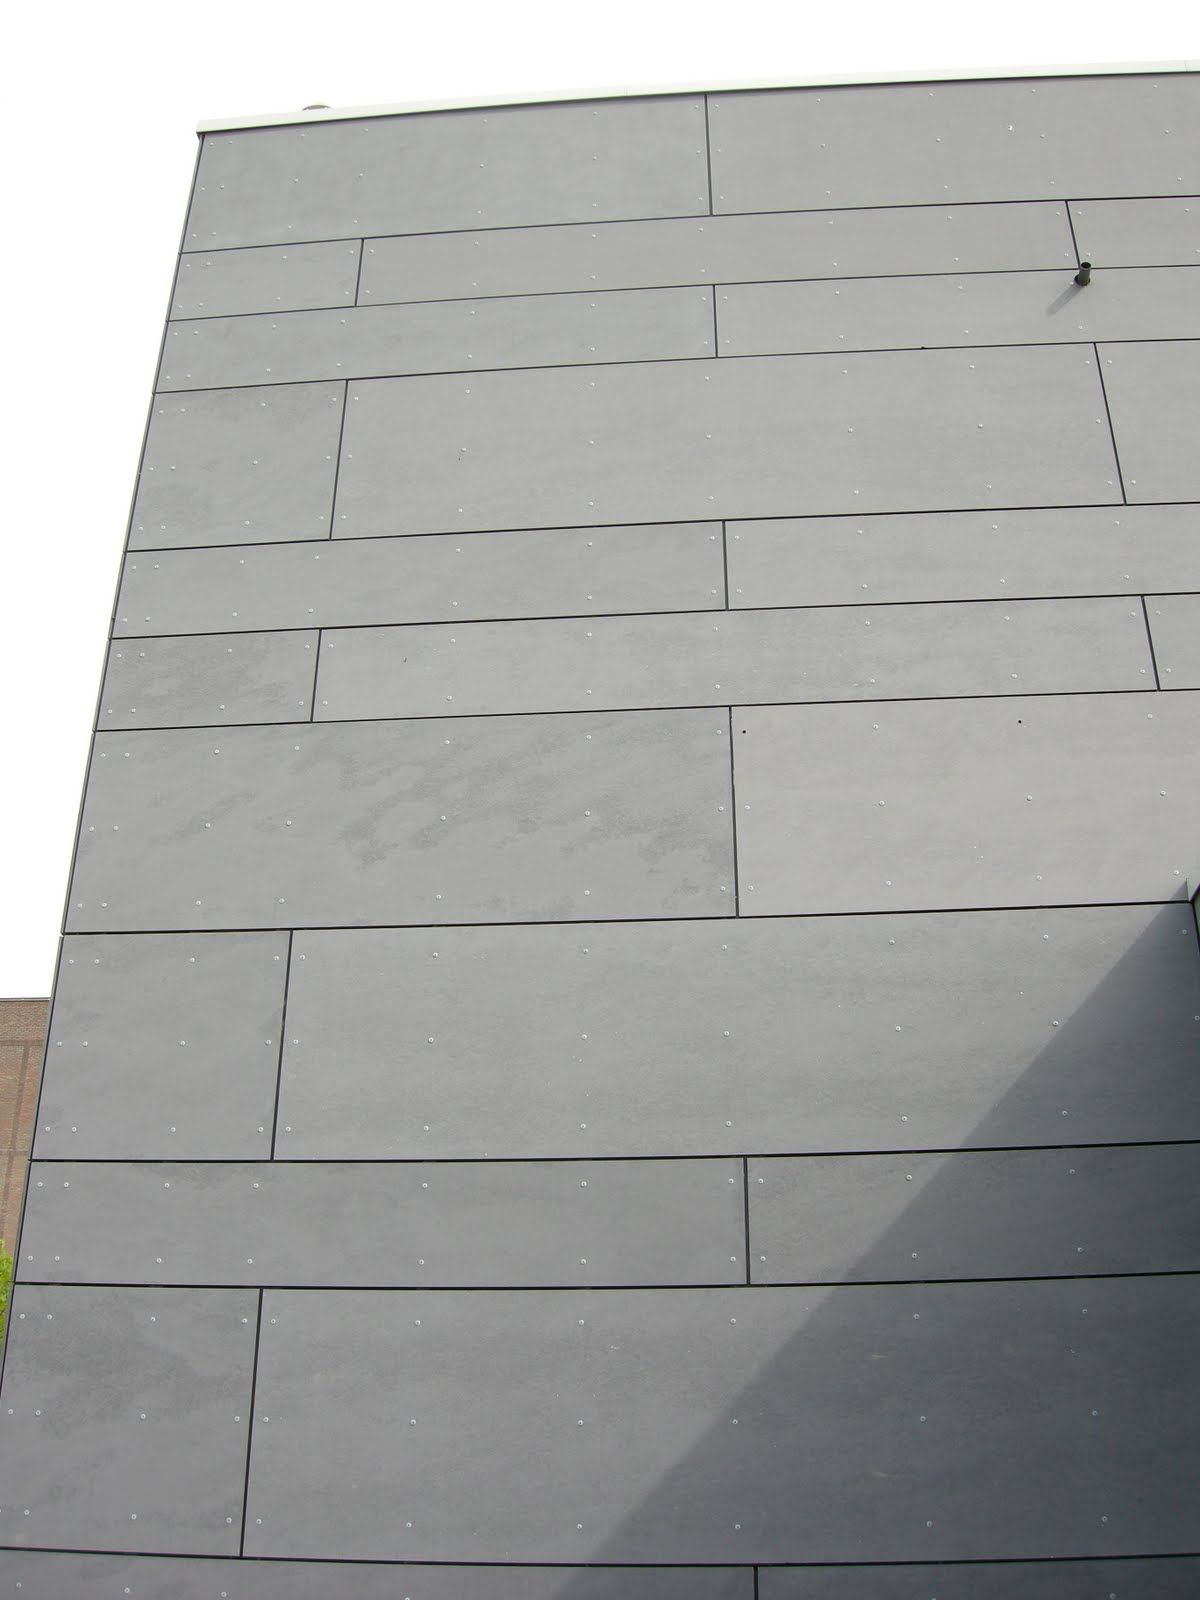 Eternit Fassade Renovieren Engineered Assemblies Eternit Fibre Cement Panel